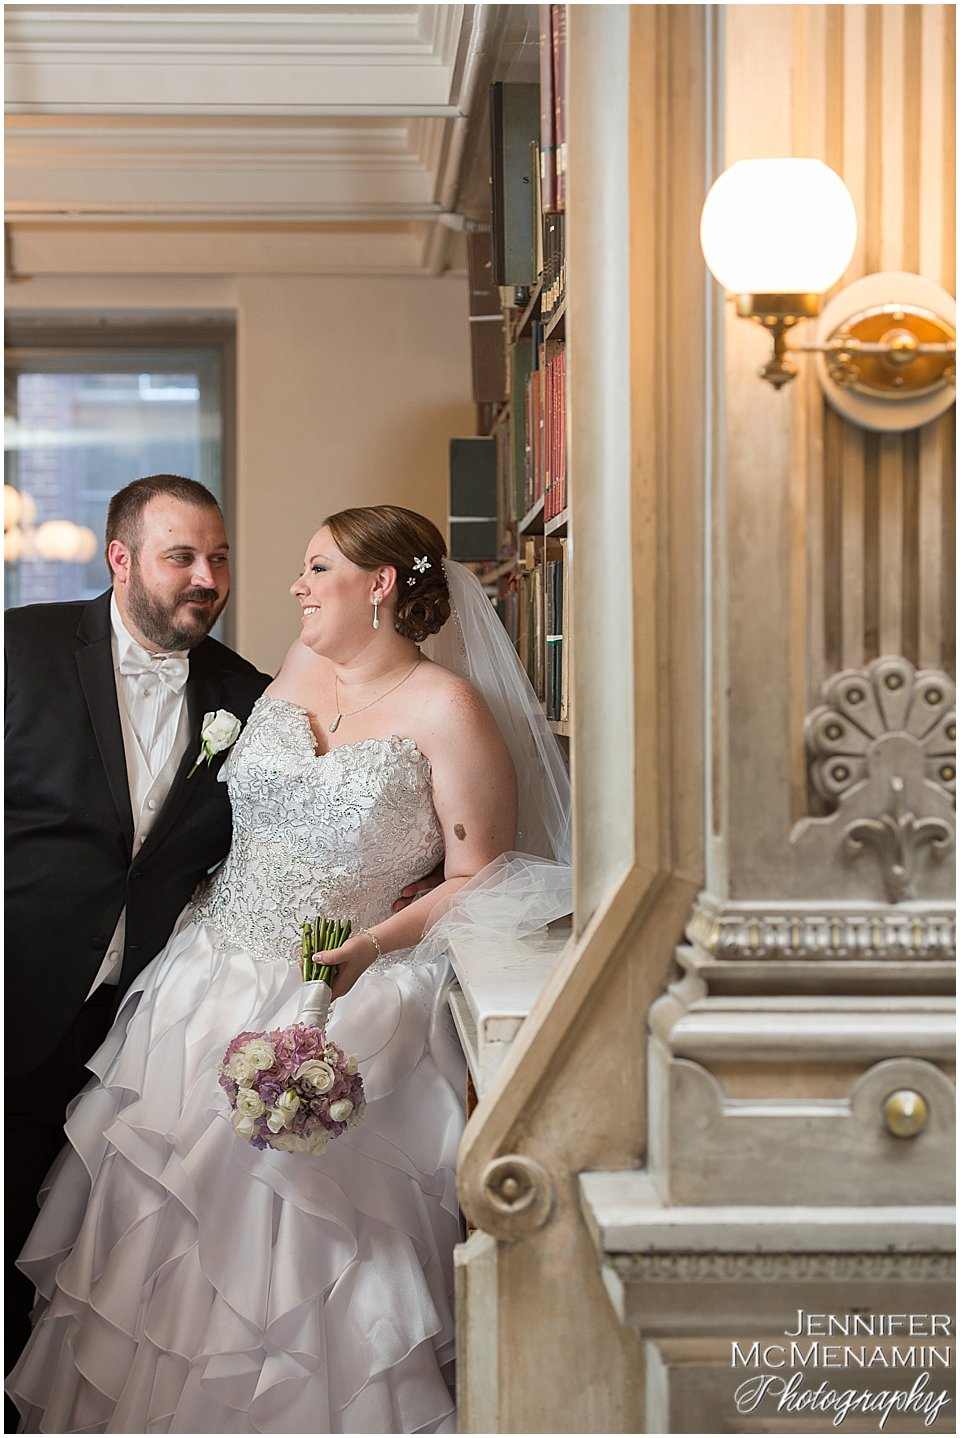 009-KinzlerShaull_01213_Jennifer-McMenamin-Photography-Peabody-Library-wedding